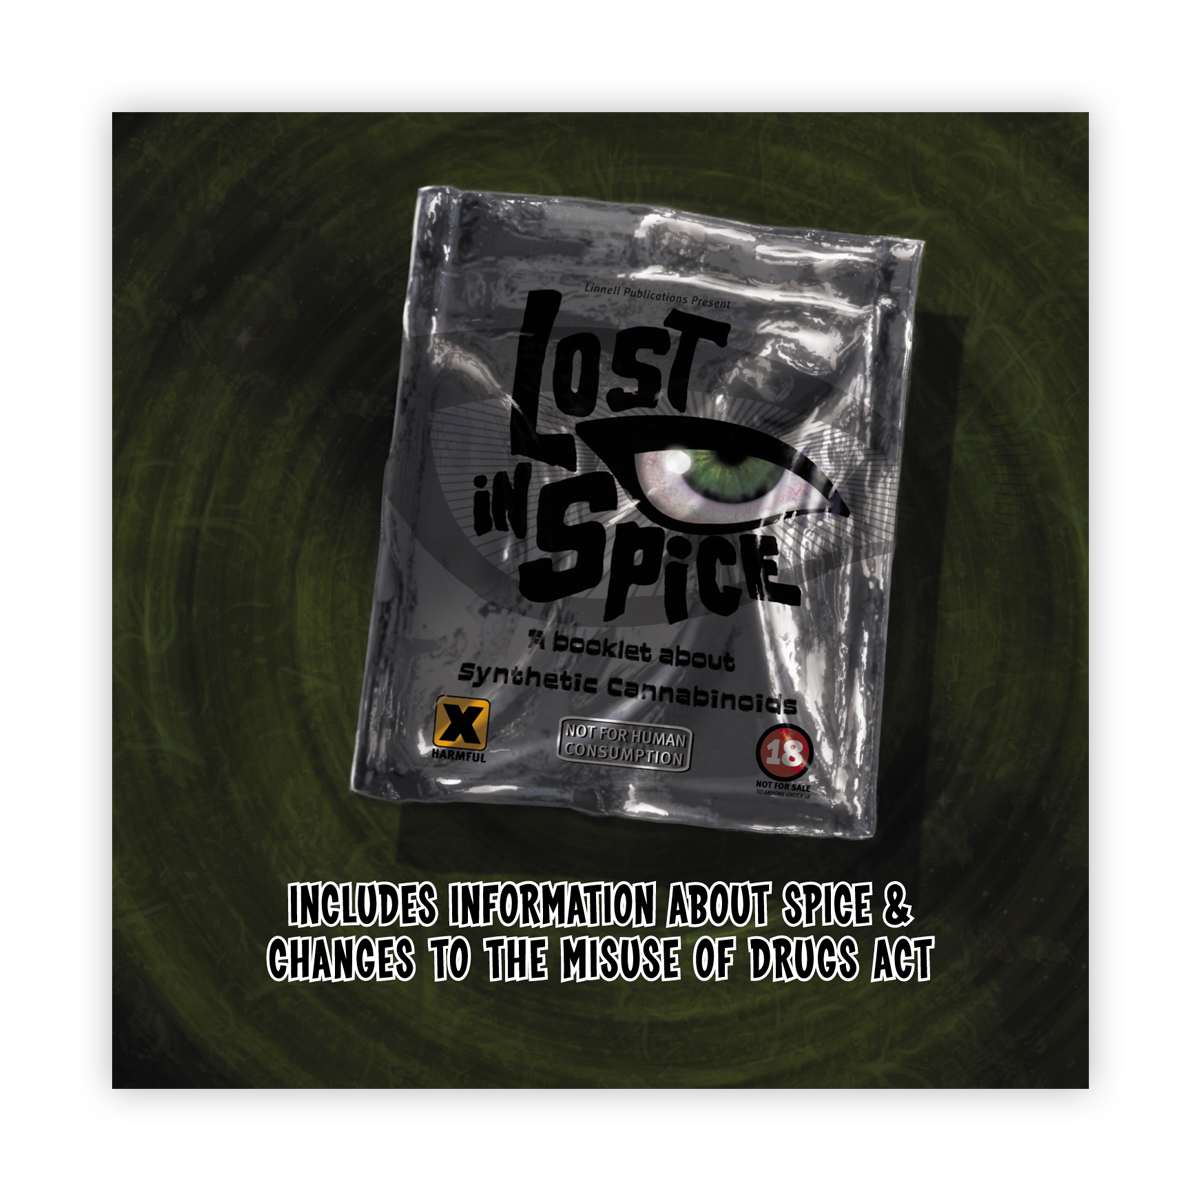 Lost in spice: a guide to synthetic cannabinoids